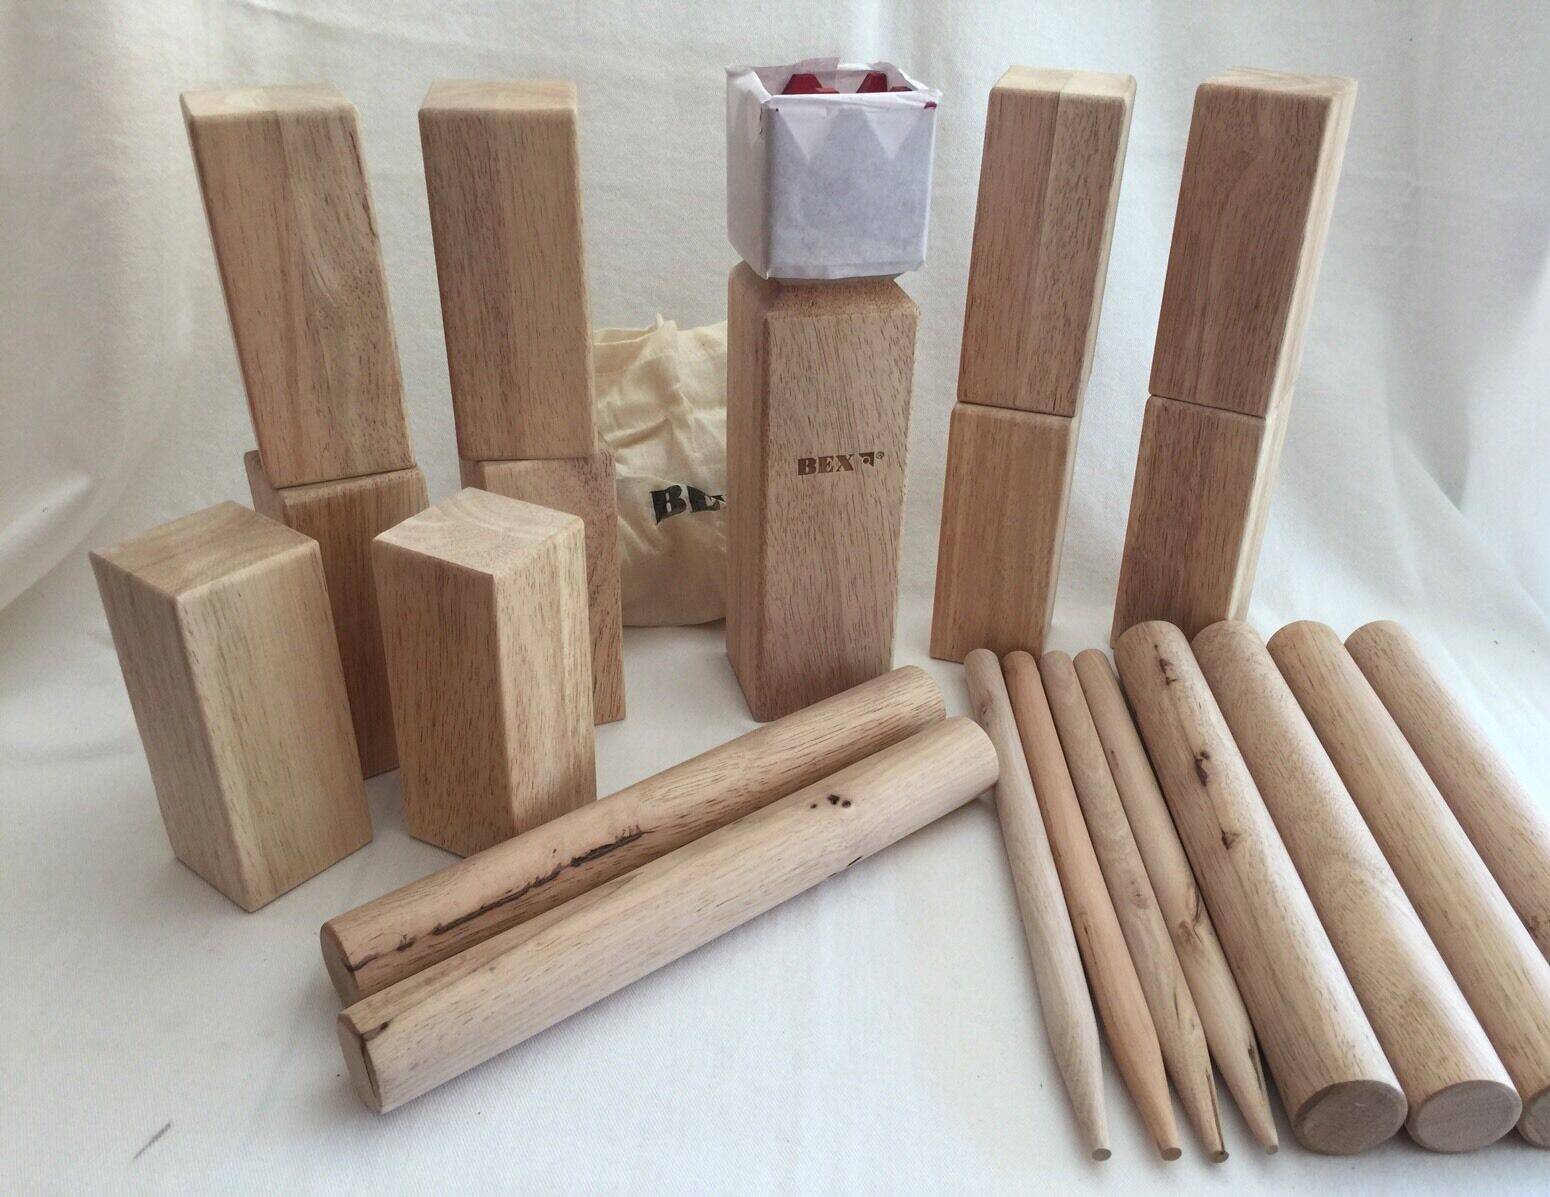 Kubb Original BEX Ancient Game of Skill Lawn Wooden  Wood  high-quality merchandise and convenient, honest service